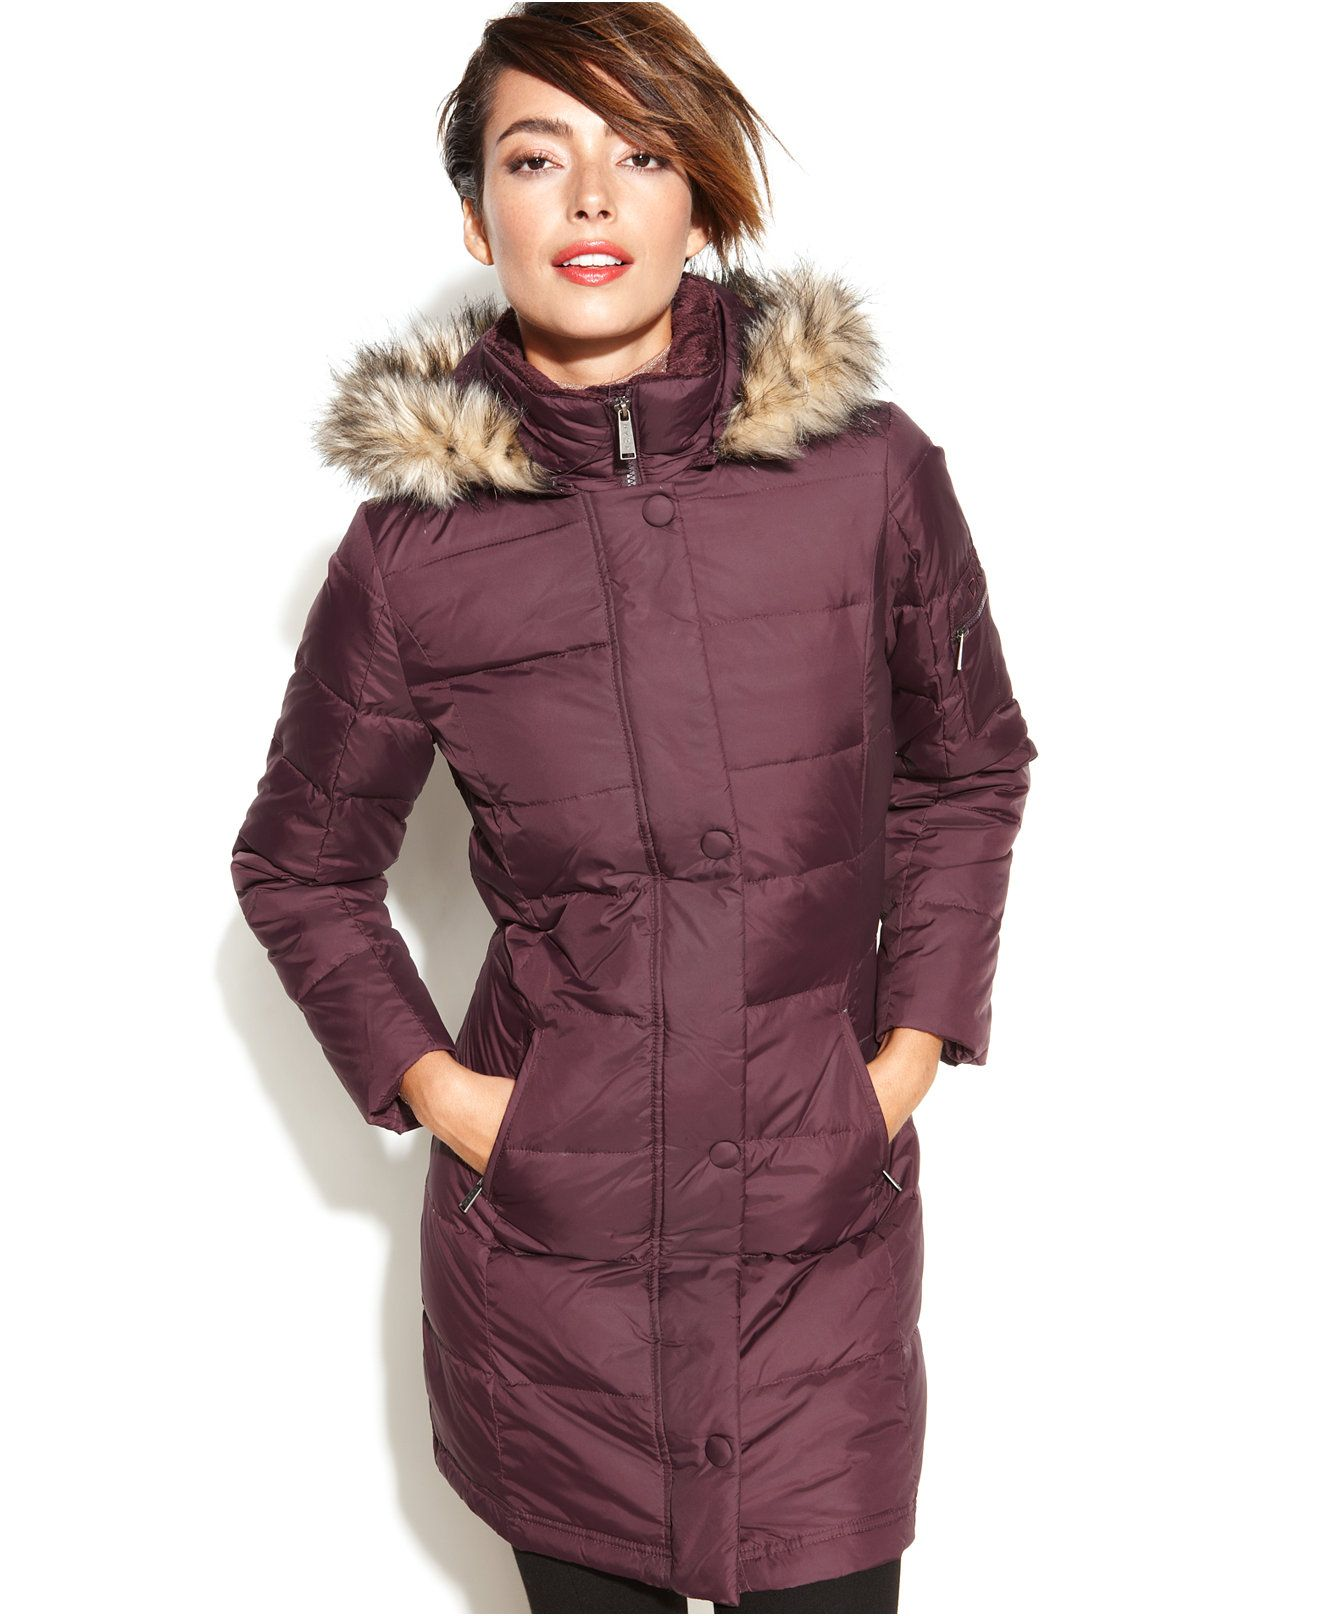 DKNY Hooded Faux-Fur-Trim Quilted Long-Length Down Coat - Coats ... : quilted long down coat - Adamdwight.com